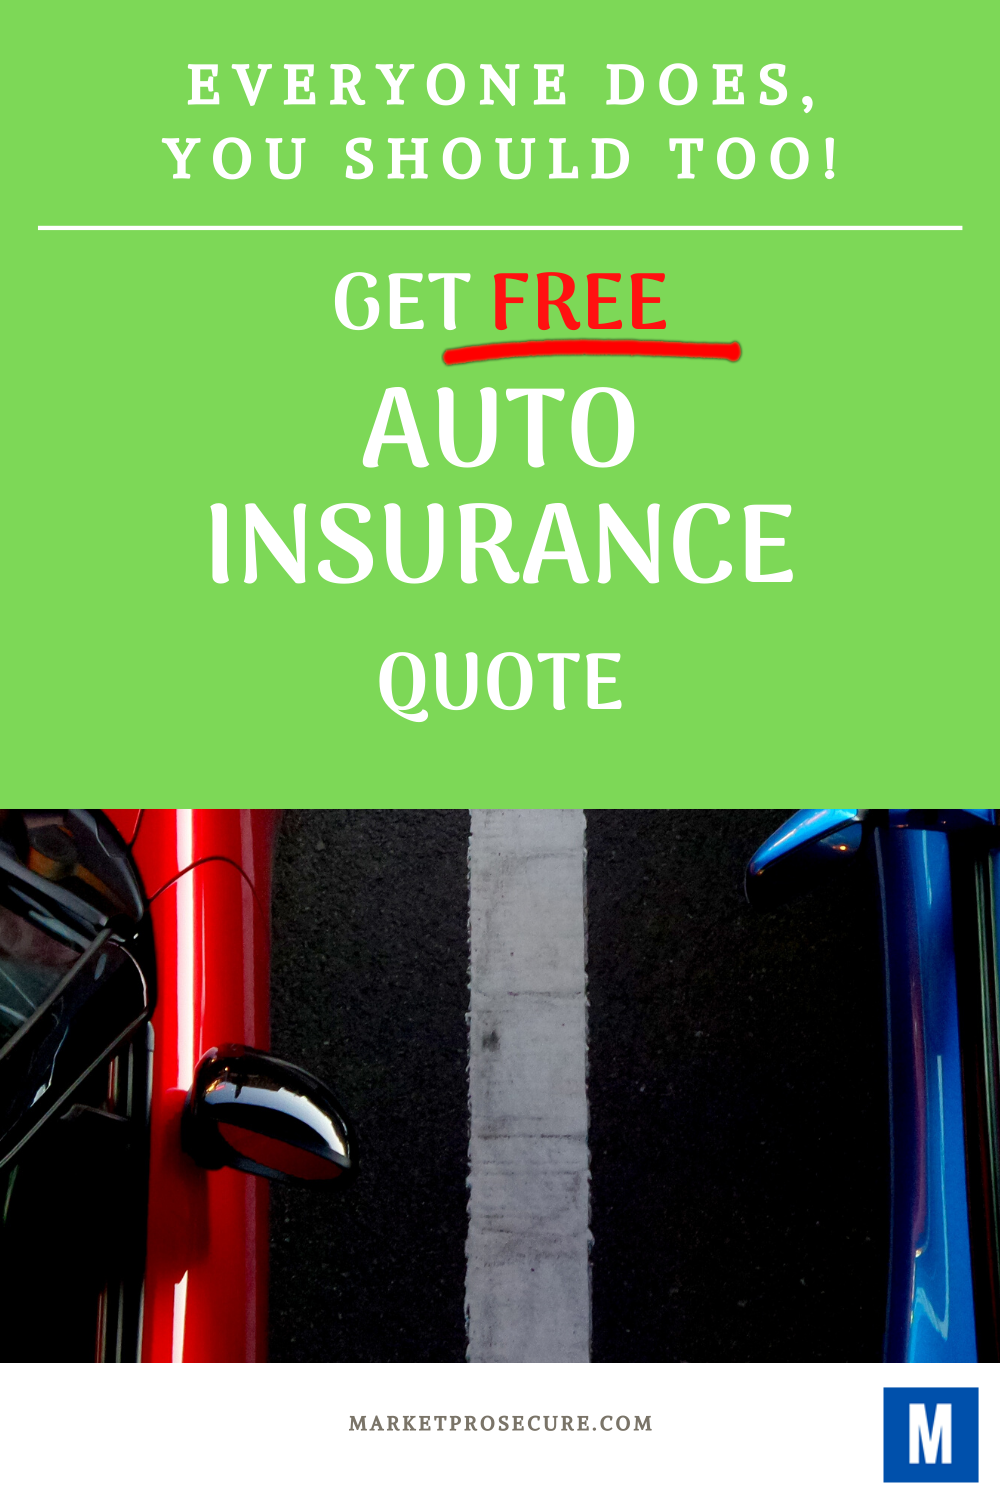 Need a better auto insurance? Everyone does, you should